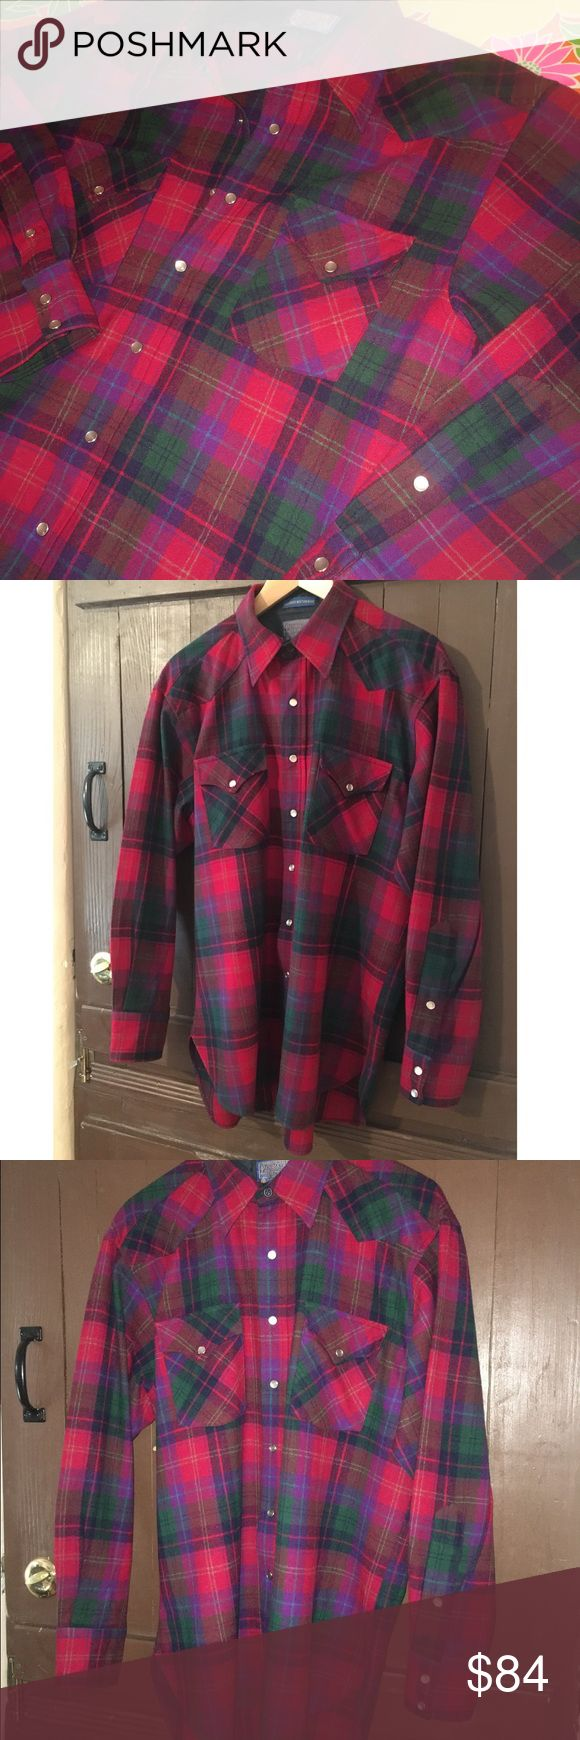 "NWOT Pendleton Western 100% Virgin Wool Shirt Absolute showstopper. Superior quality authentic Pendleton Woolen Mills 100% Virgin Wool Western Dress Shirt with classic pearl snap buttons, lined cuffs and collar. Red with green, purple and teal plaid print. MADE IN USA! Brand new with no damage, stains, odor etc. Lasts forever! Tiny size tag fell off. Magnificent piece of Americana. Ships fast from a clean, conscious, smoke-free home. Measurements: Chest: 48"" Shoulders: 20"" Sleeves: 23""…"